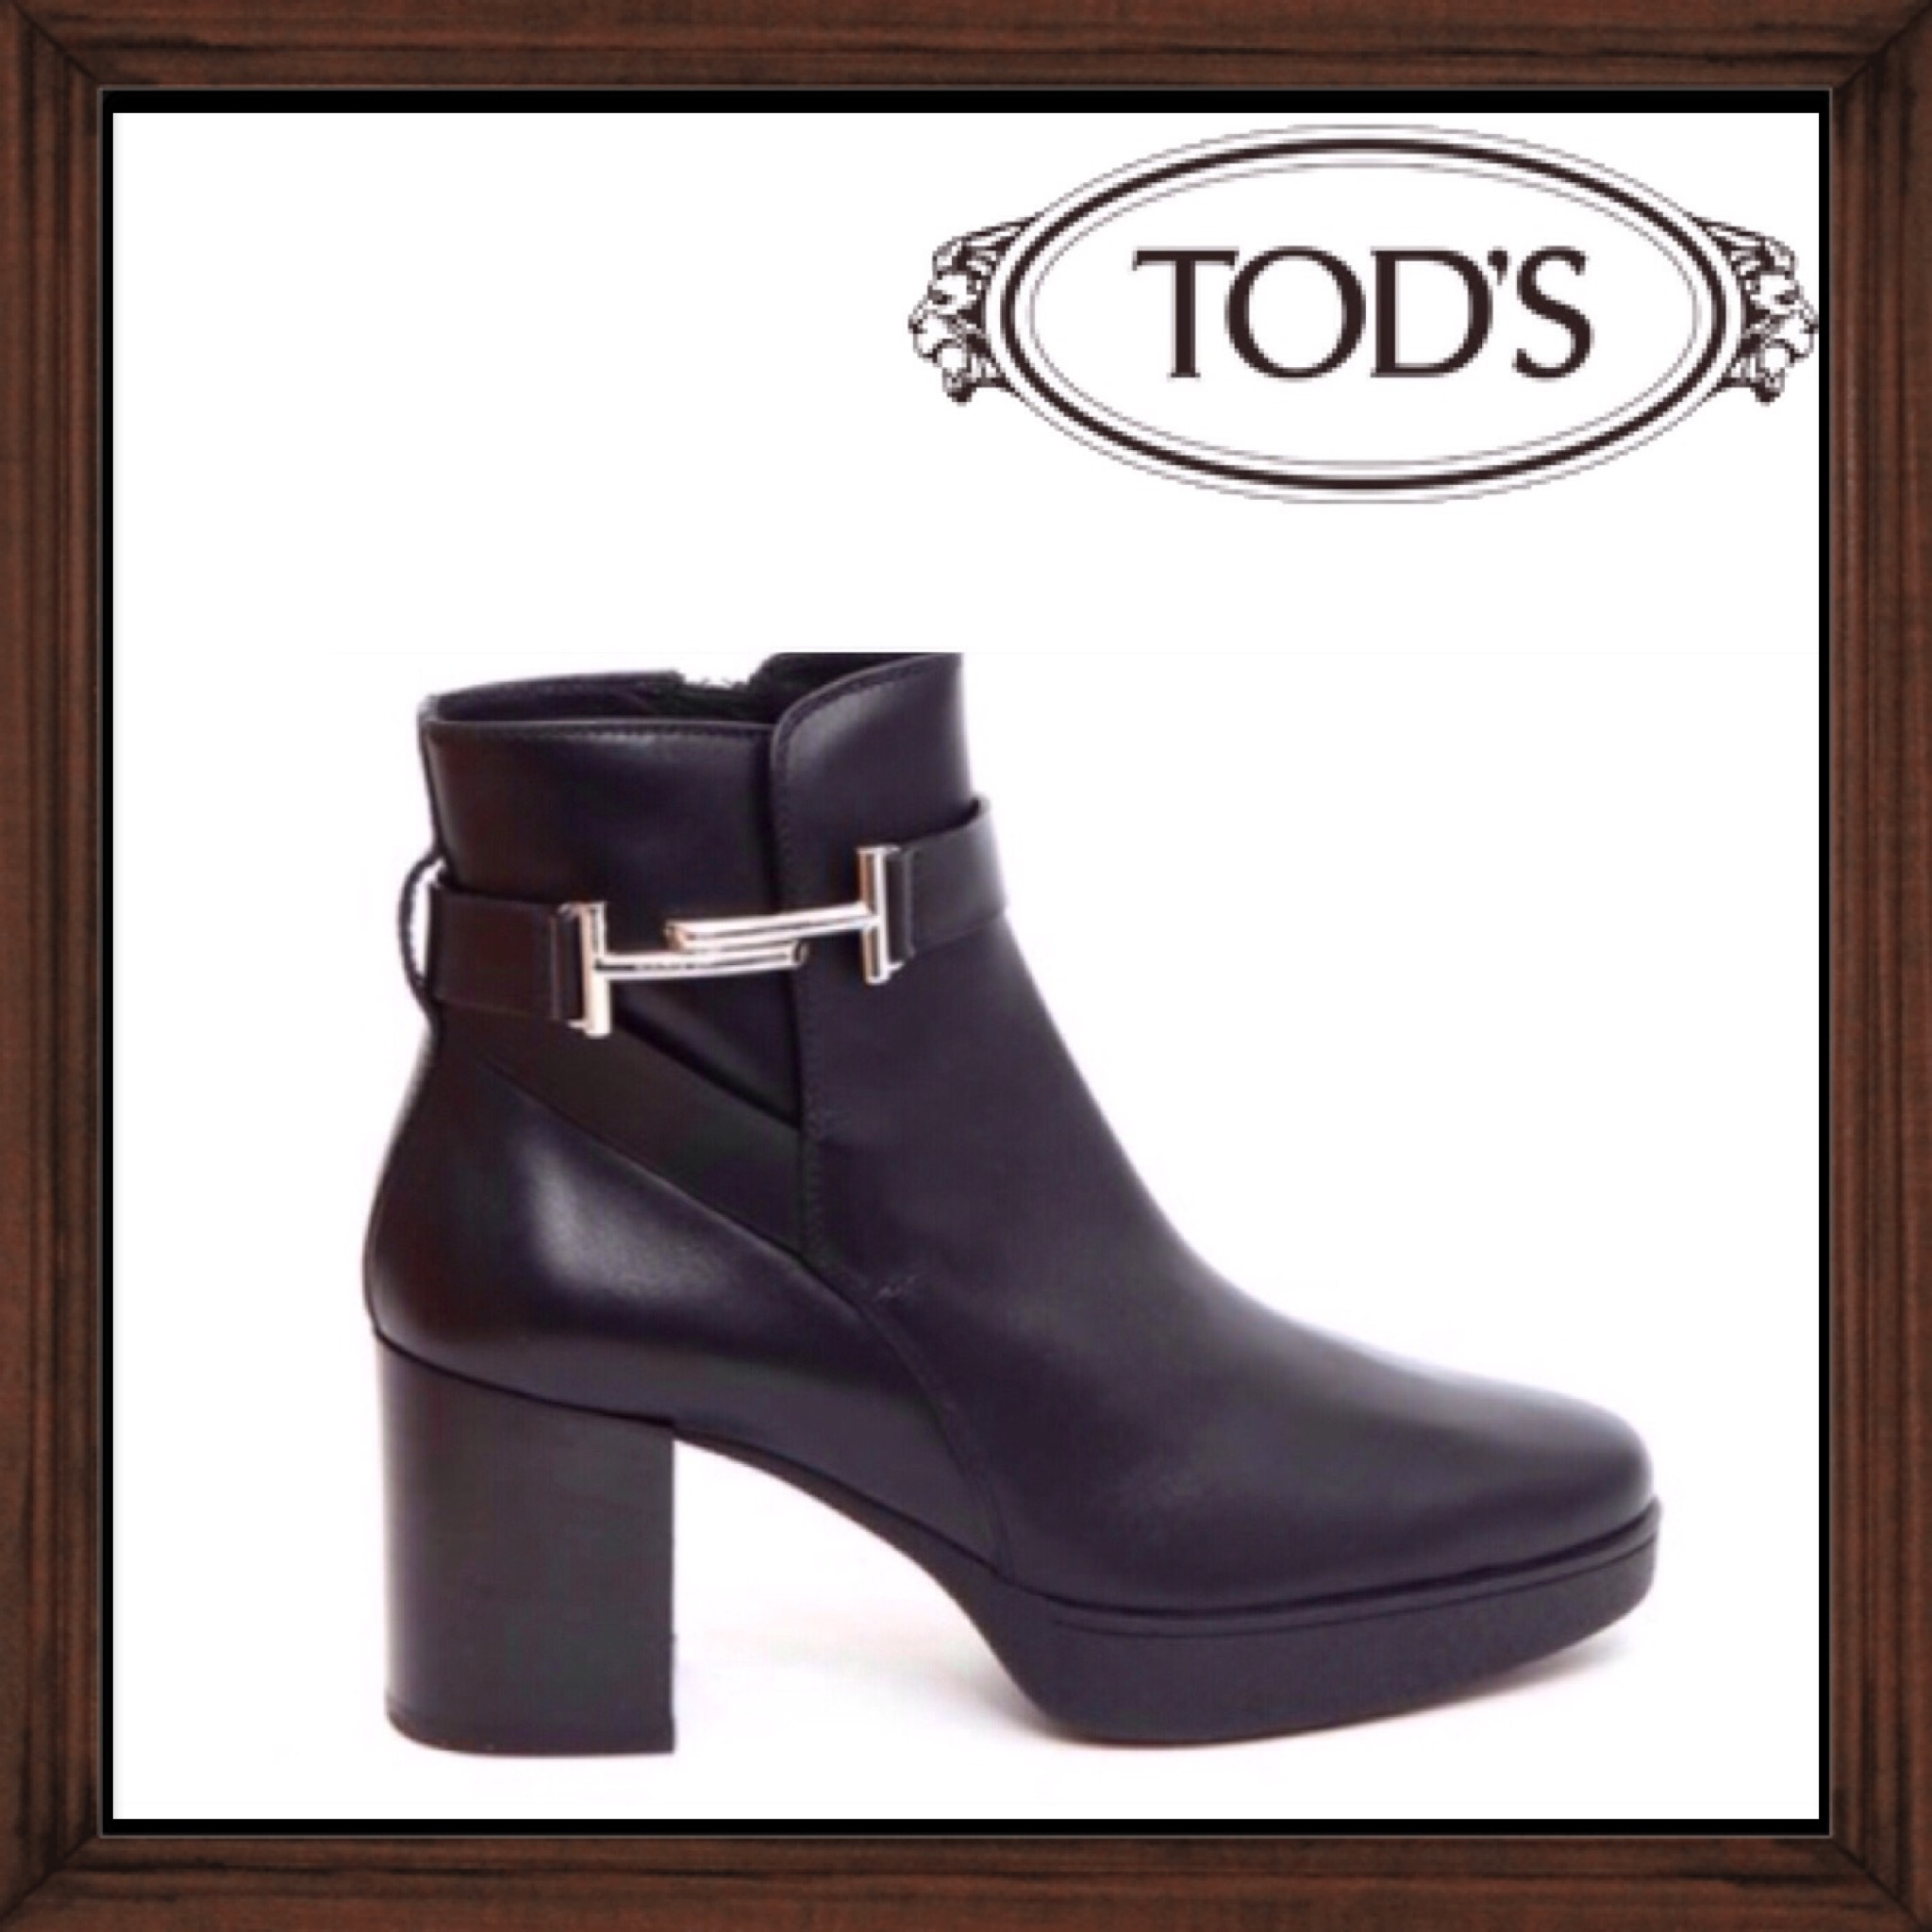 ★★TOD'S《トッズ》LEATHER HEEL ANKLE BOOTS  送料込み★★